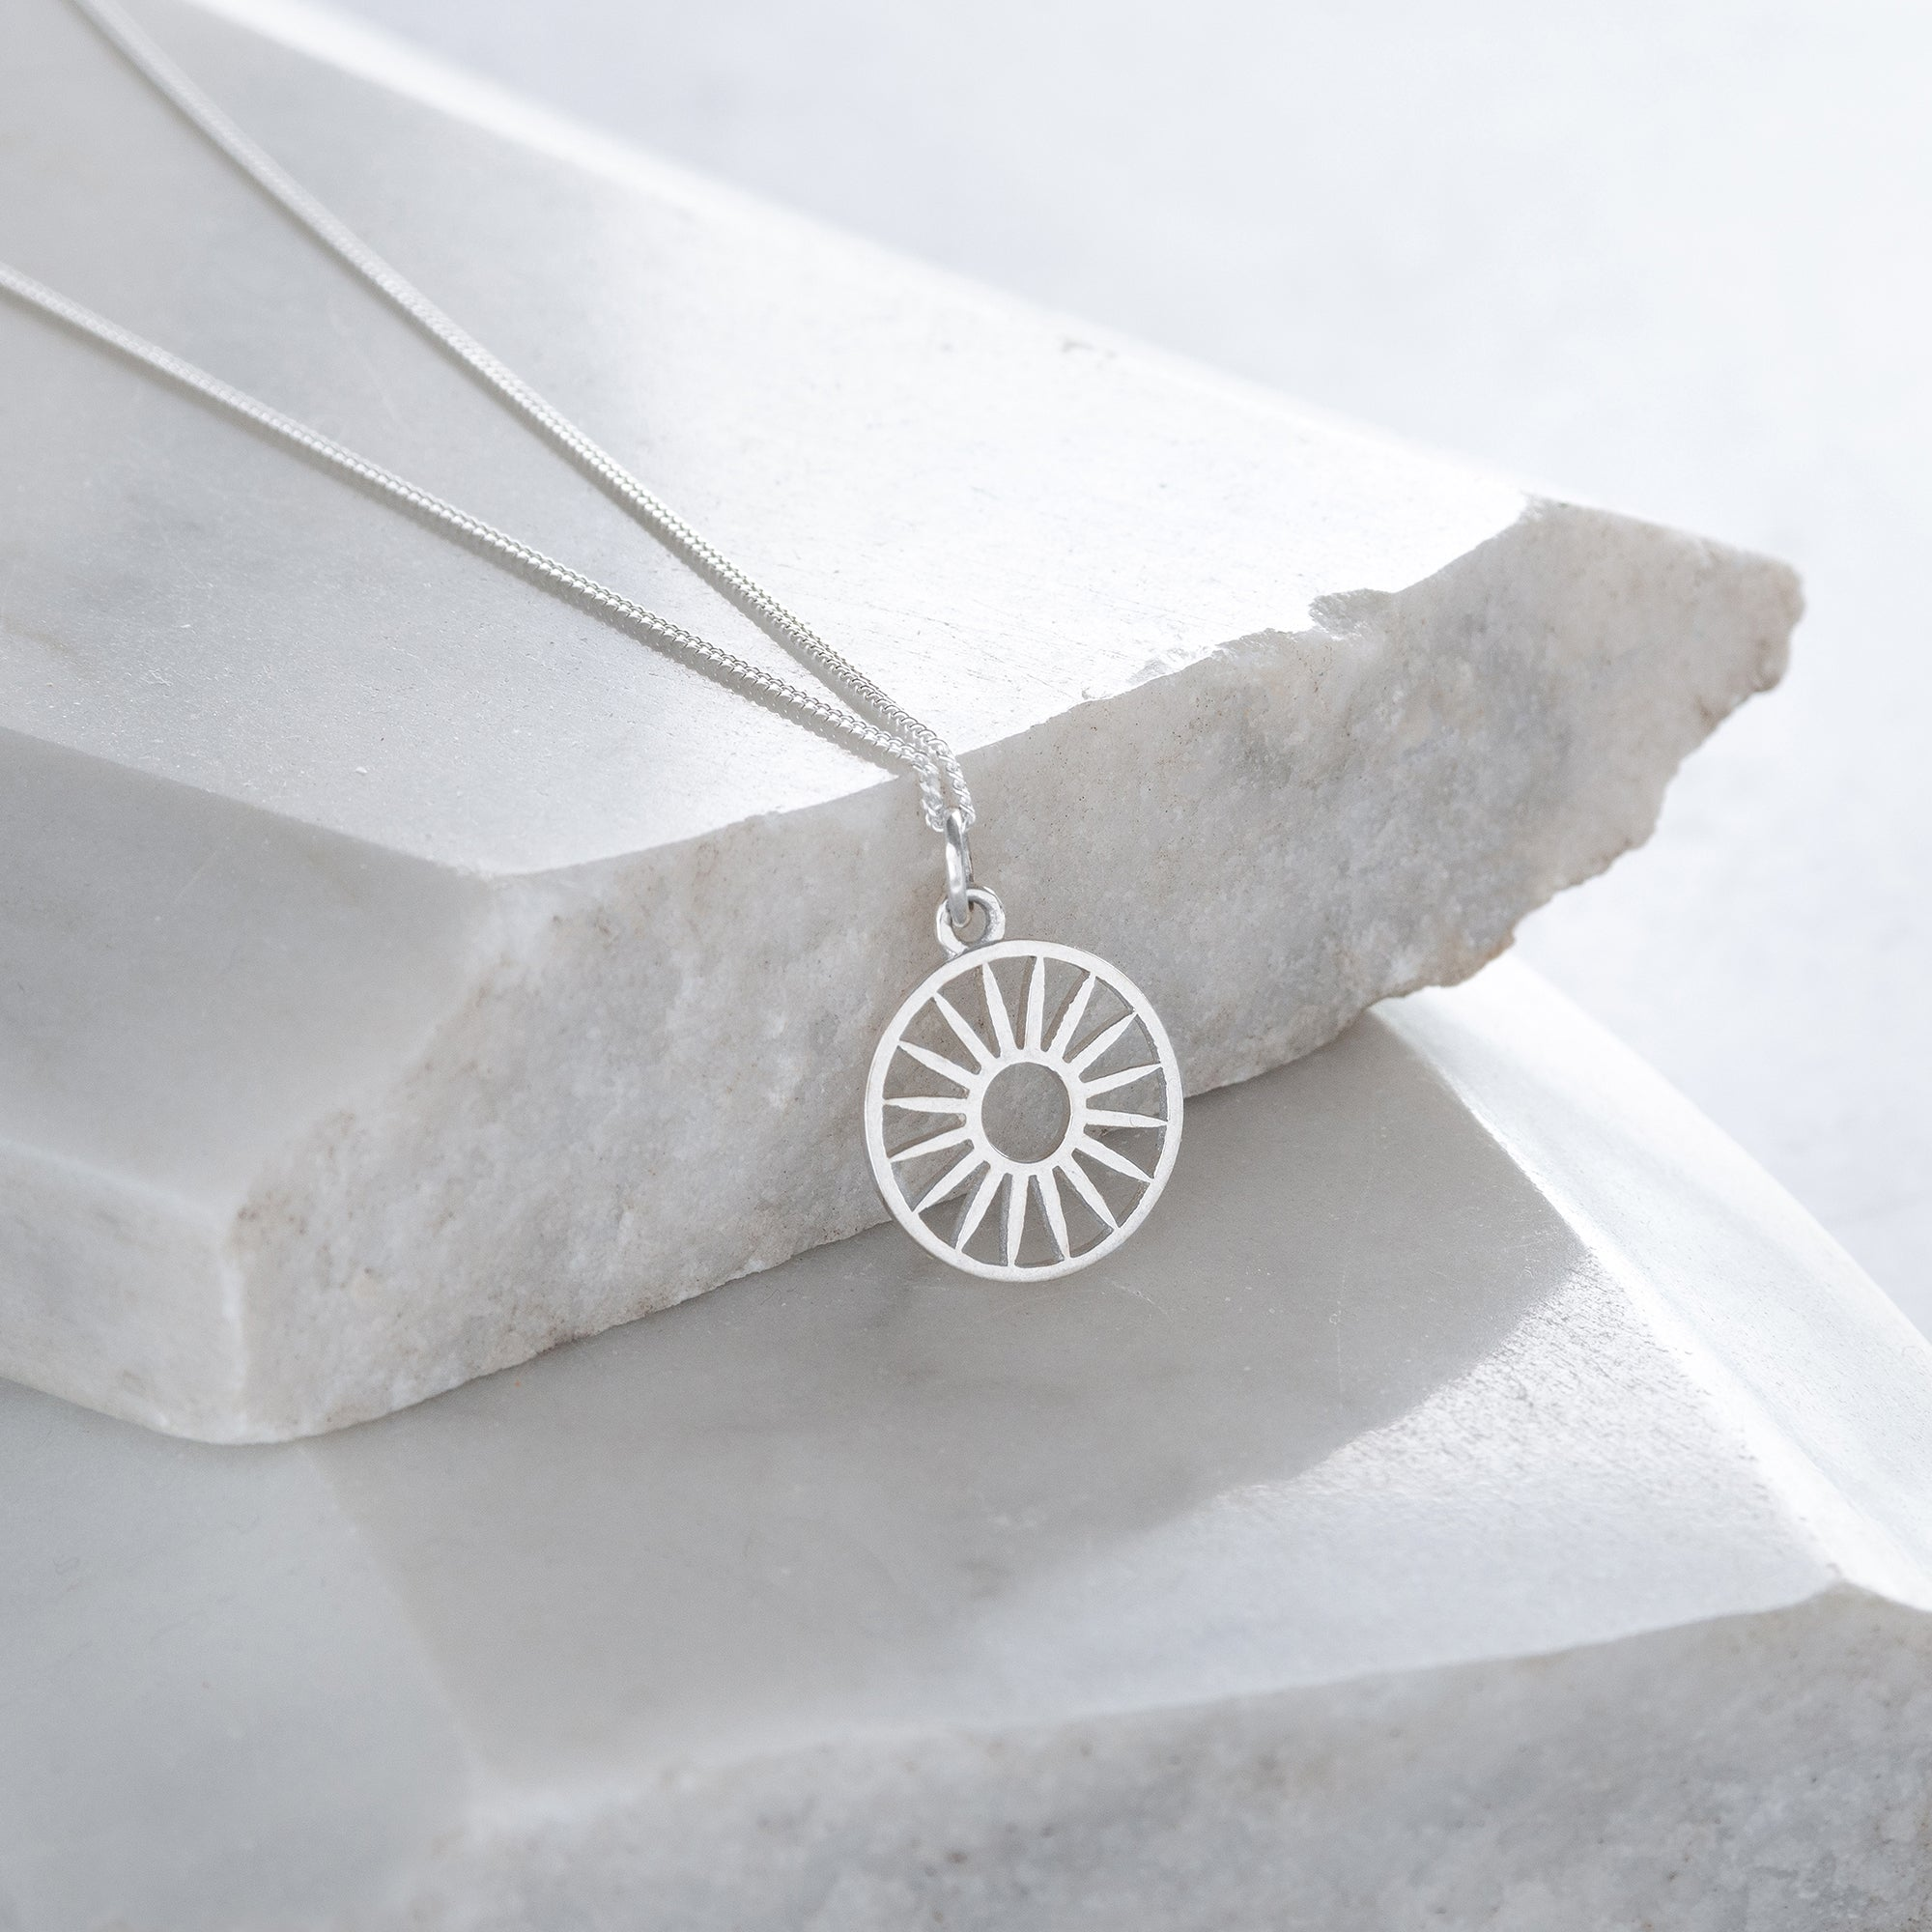 Wagon Wheel Token Charm Necklace Sterling Silver